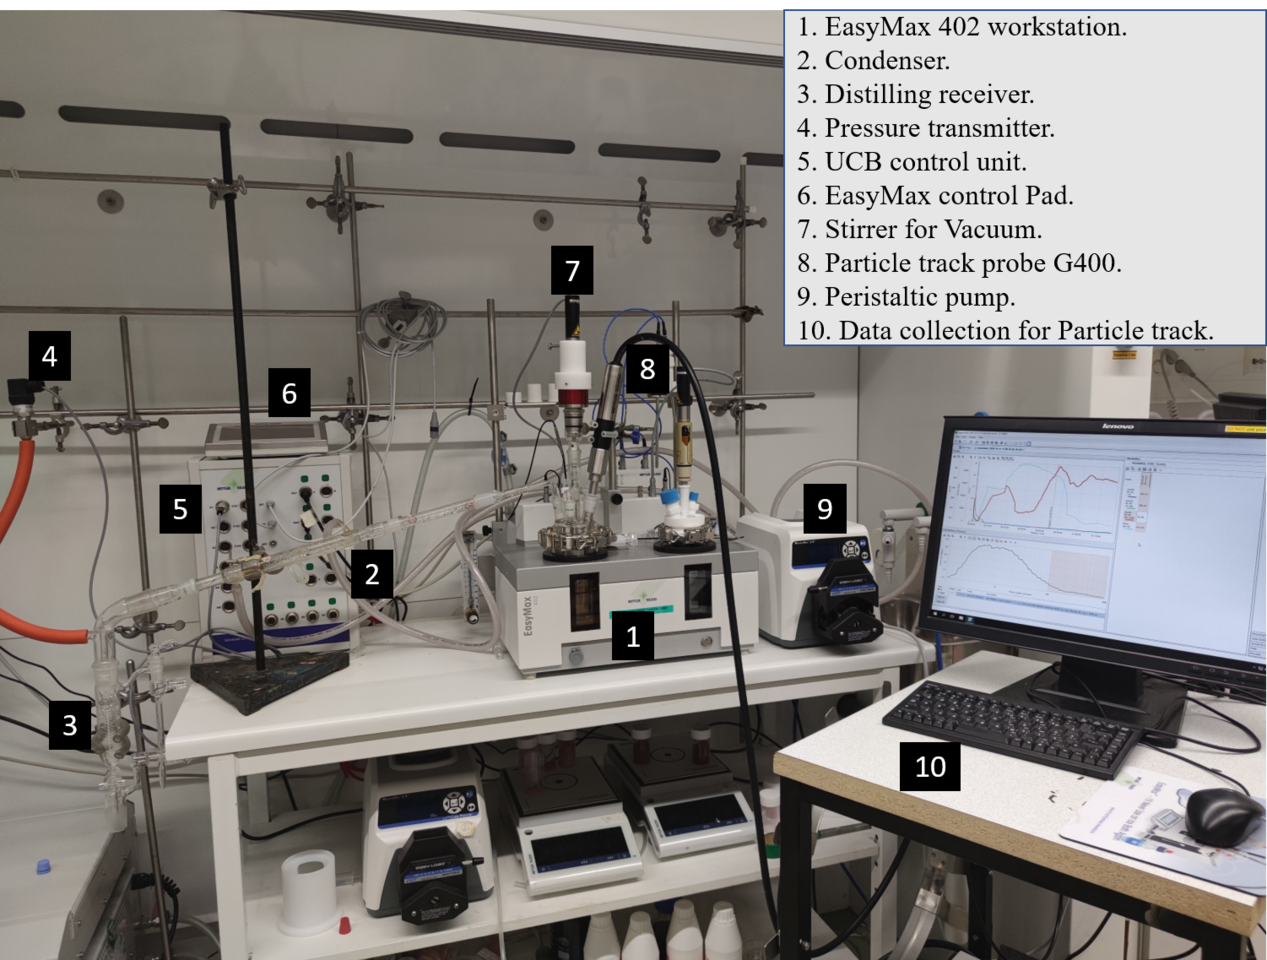 CHEM_aqueous systems_Easymax workstation